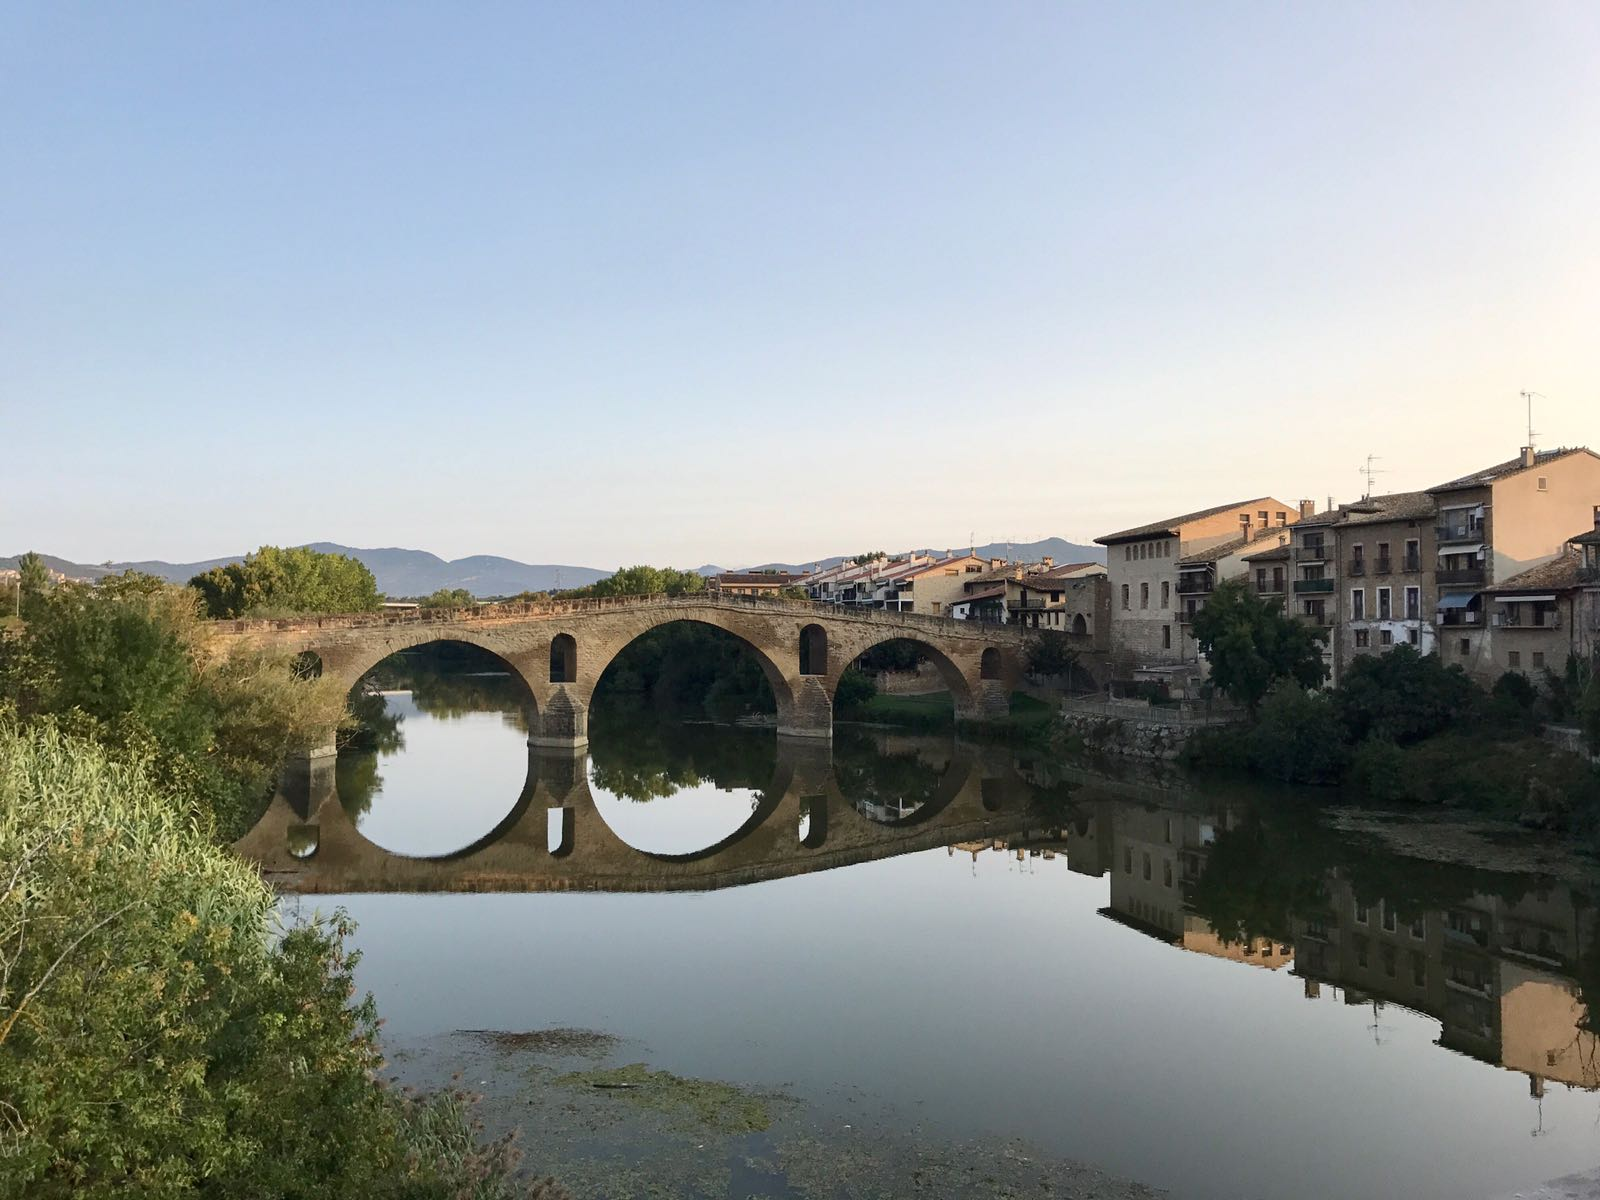 Bridge outside the town of Puenta la Reina, reflected in the river it crosses